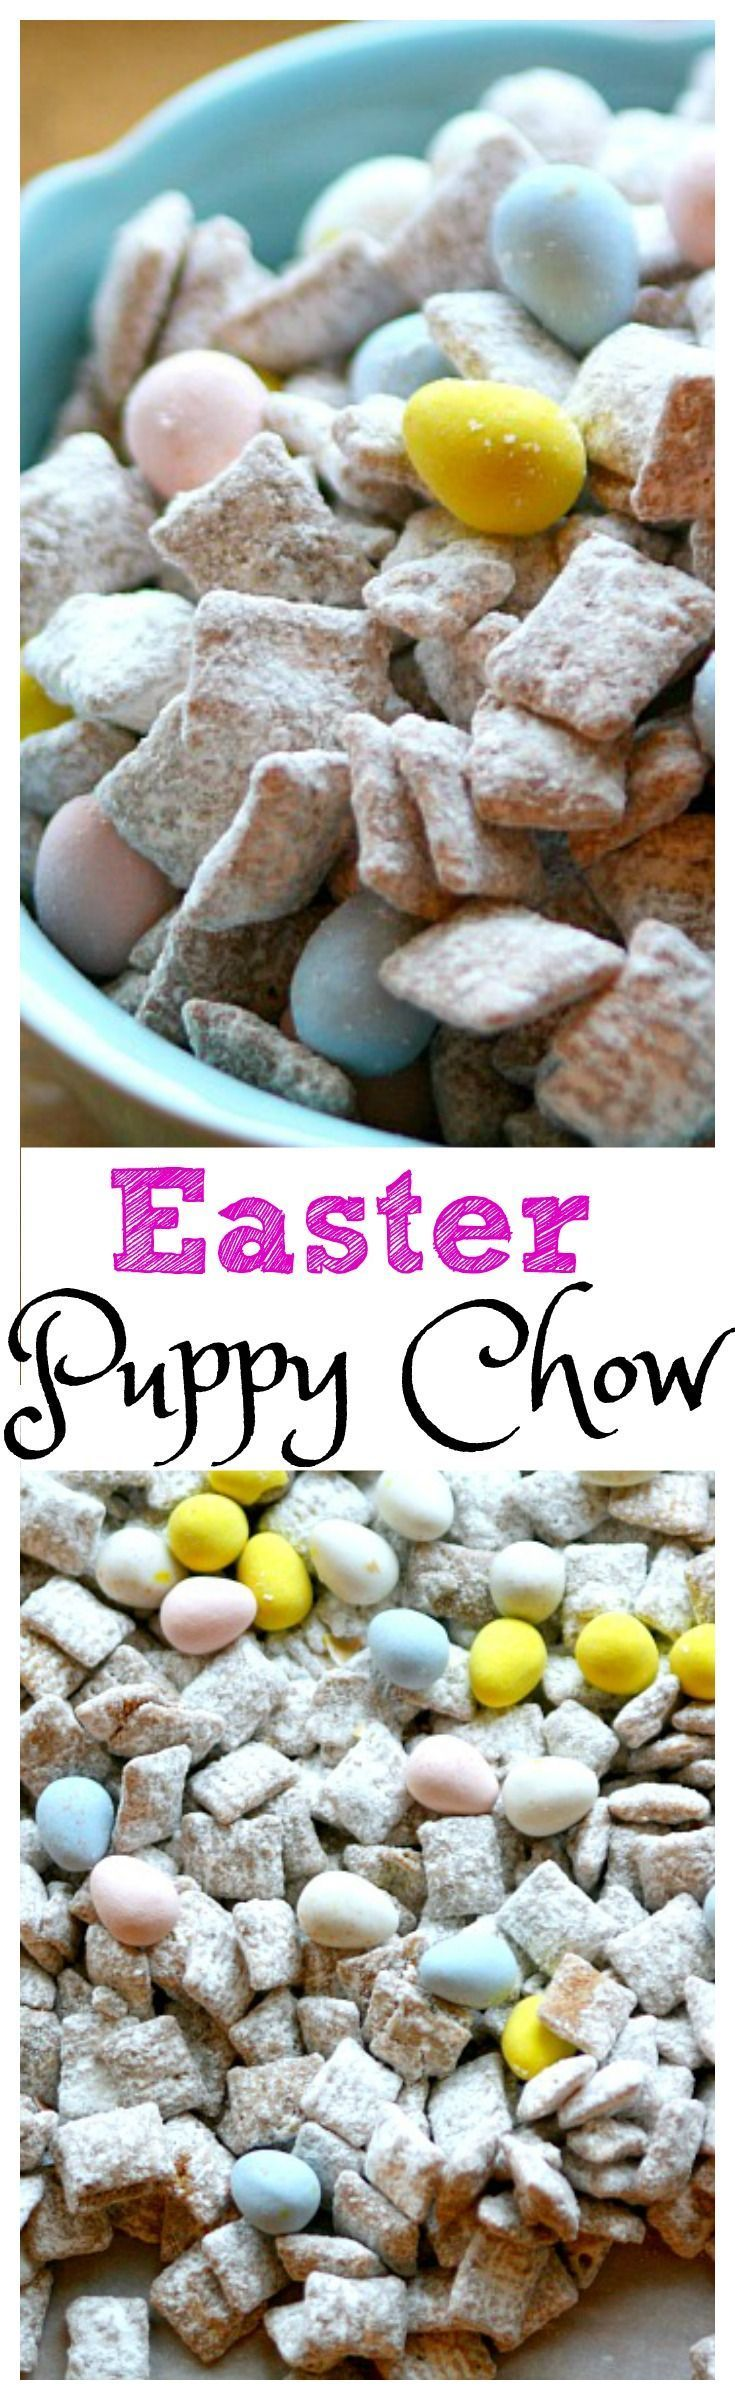 If you are looking for a quick way to add a little seasonal holiday fun to a sweet treat then this recipe might be a good fit. I used the traditional Chex recipe for Puppy Chow, but made a slight variation in order to add a little Easter-inspired goodness